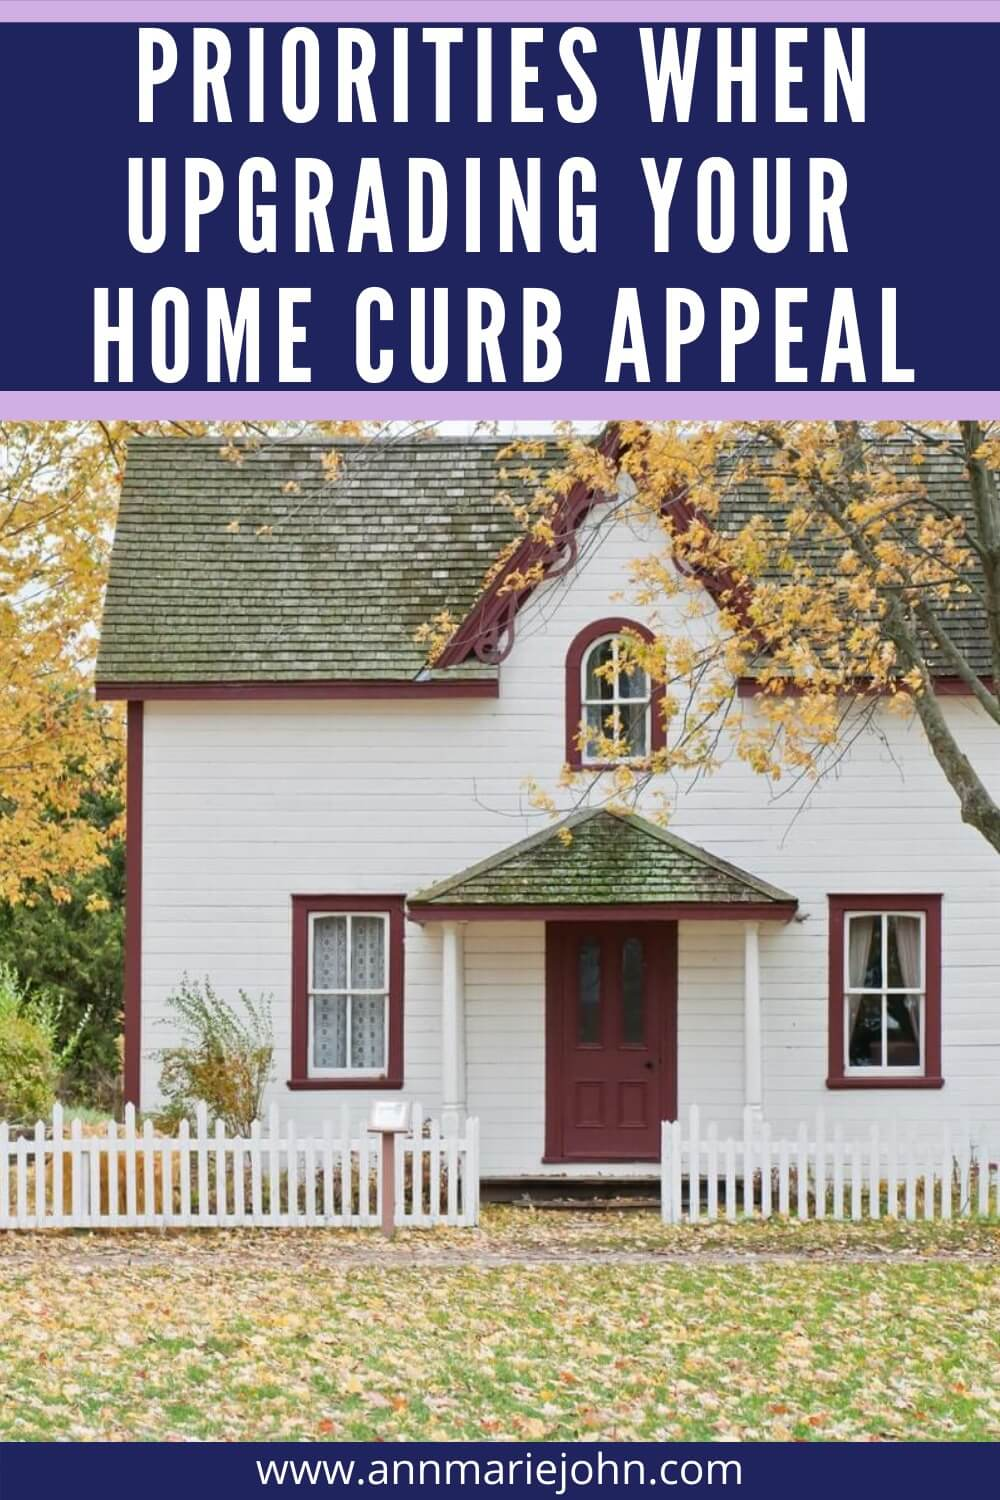 What Are the Priorities When Upgrading Your Home Curb Appeal